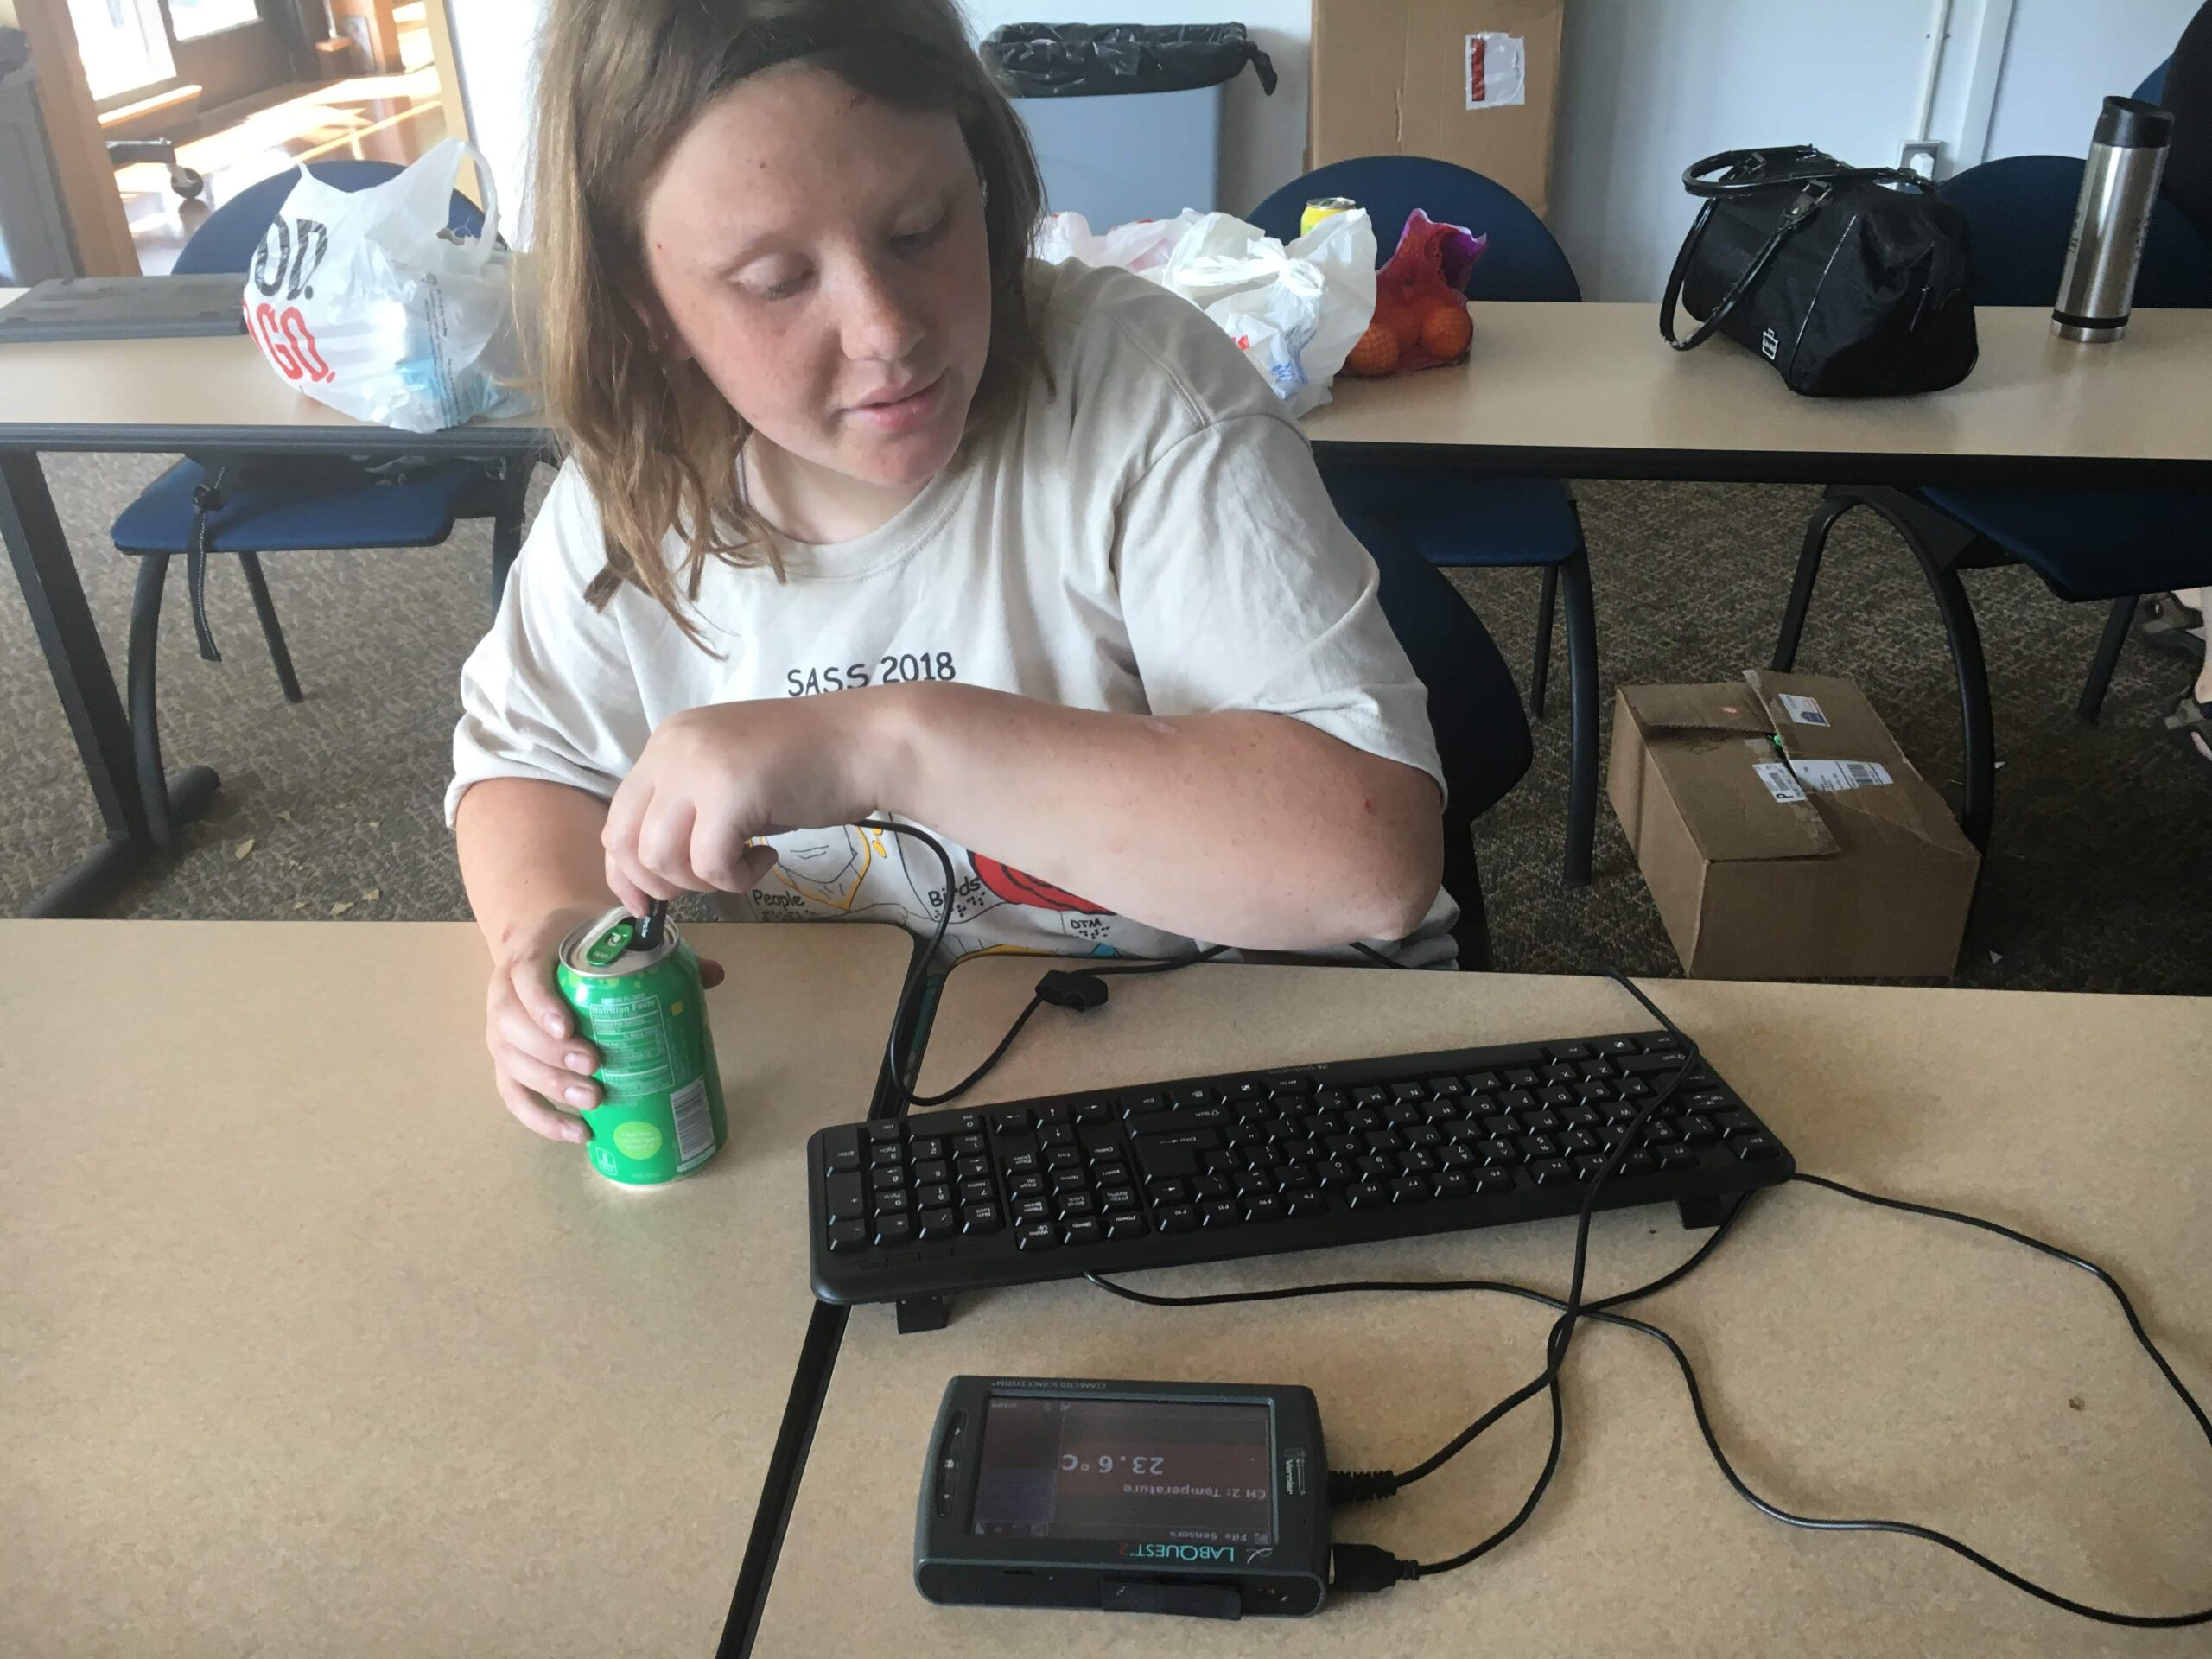 A student with a quizzical look on her face checking the temperature of a fizzy drink using LabQuest screen is shown with 23.5 degrees C displayed